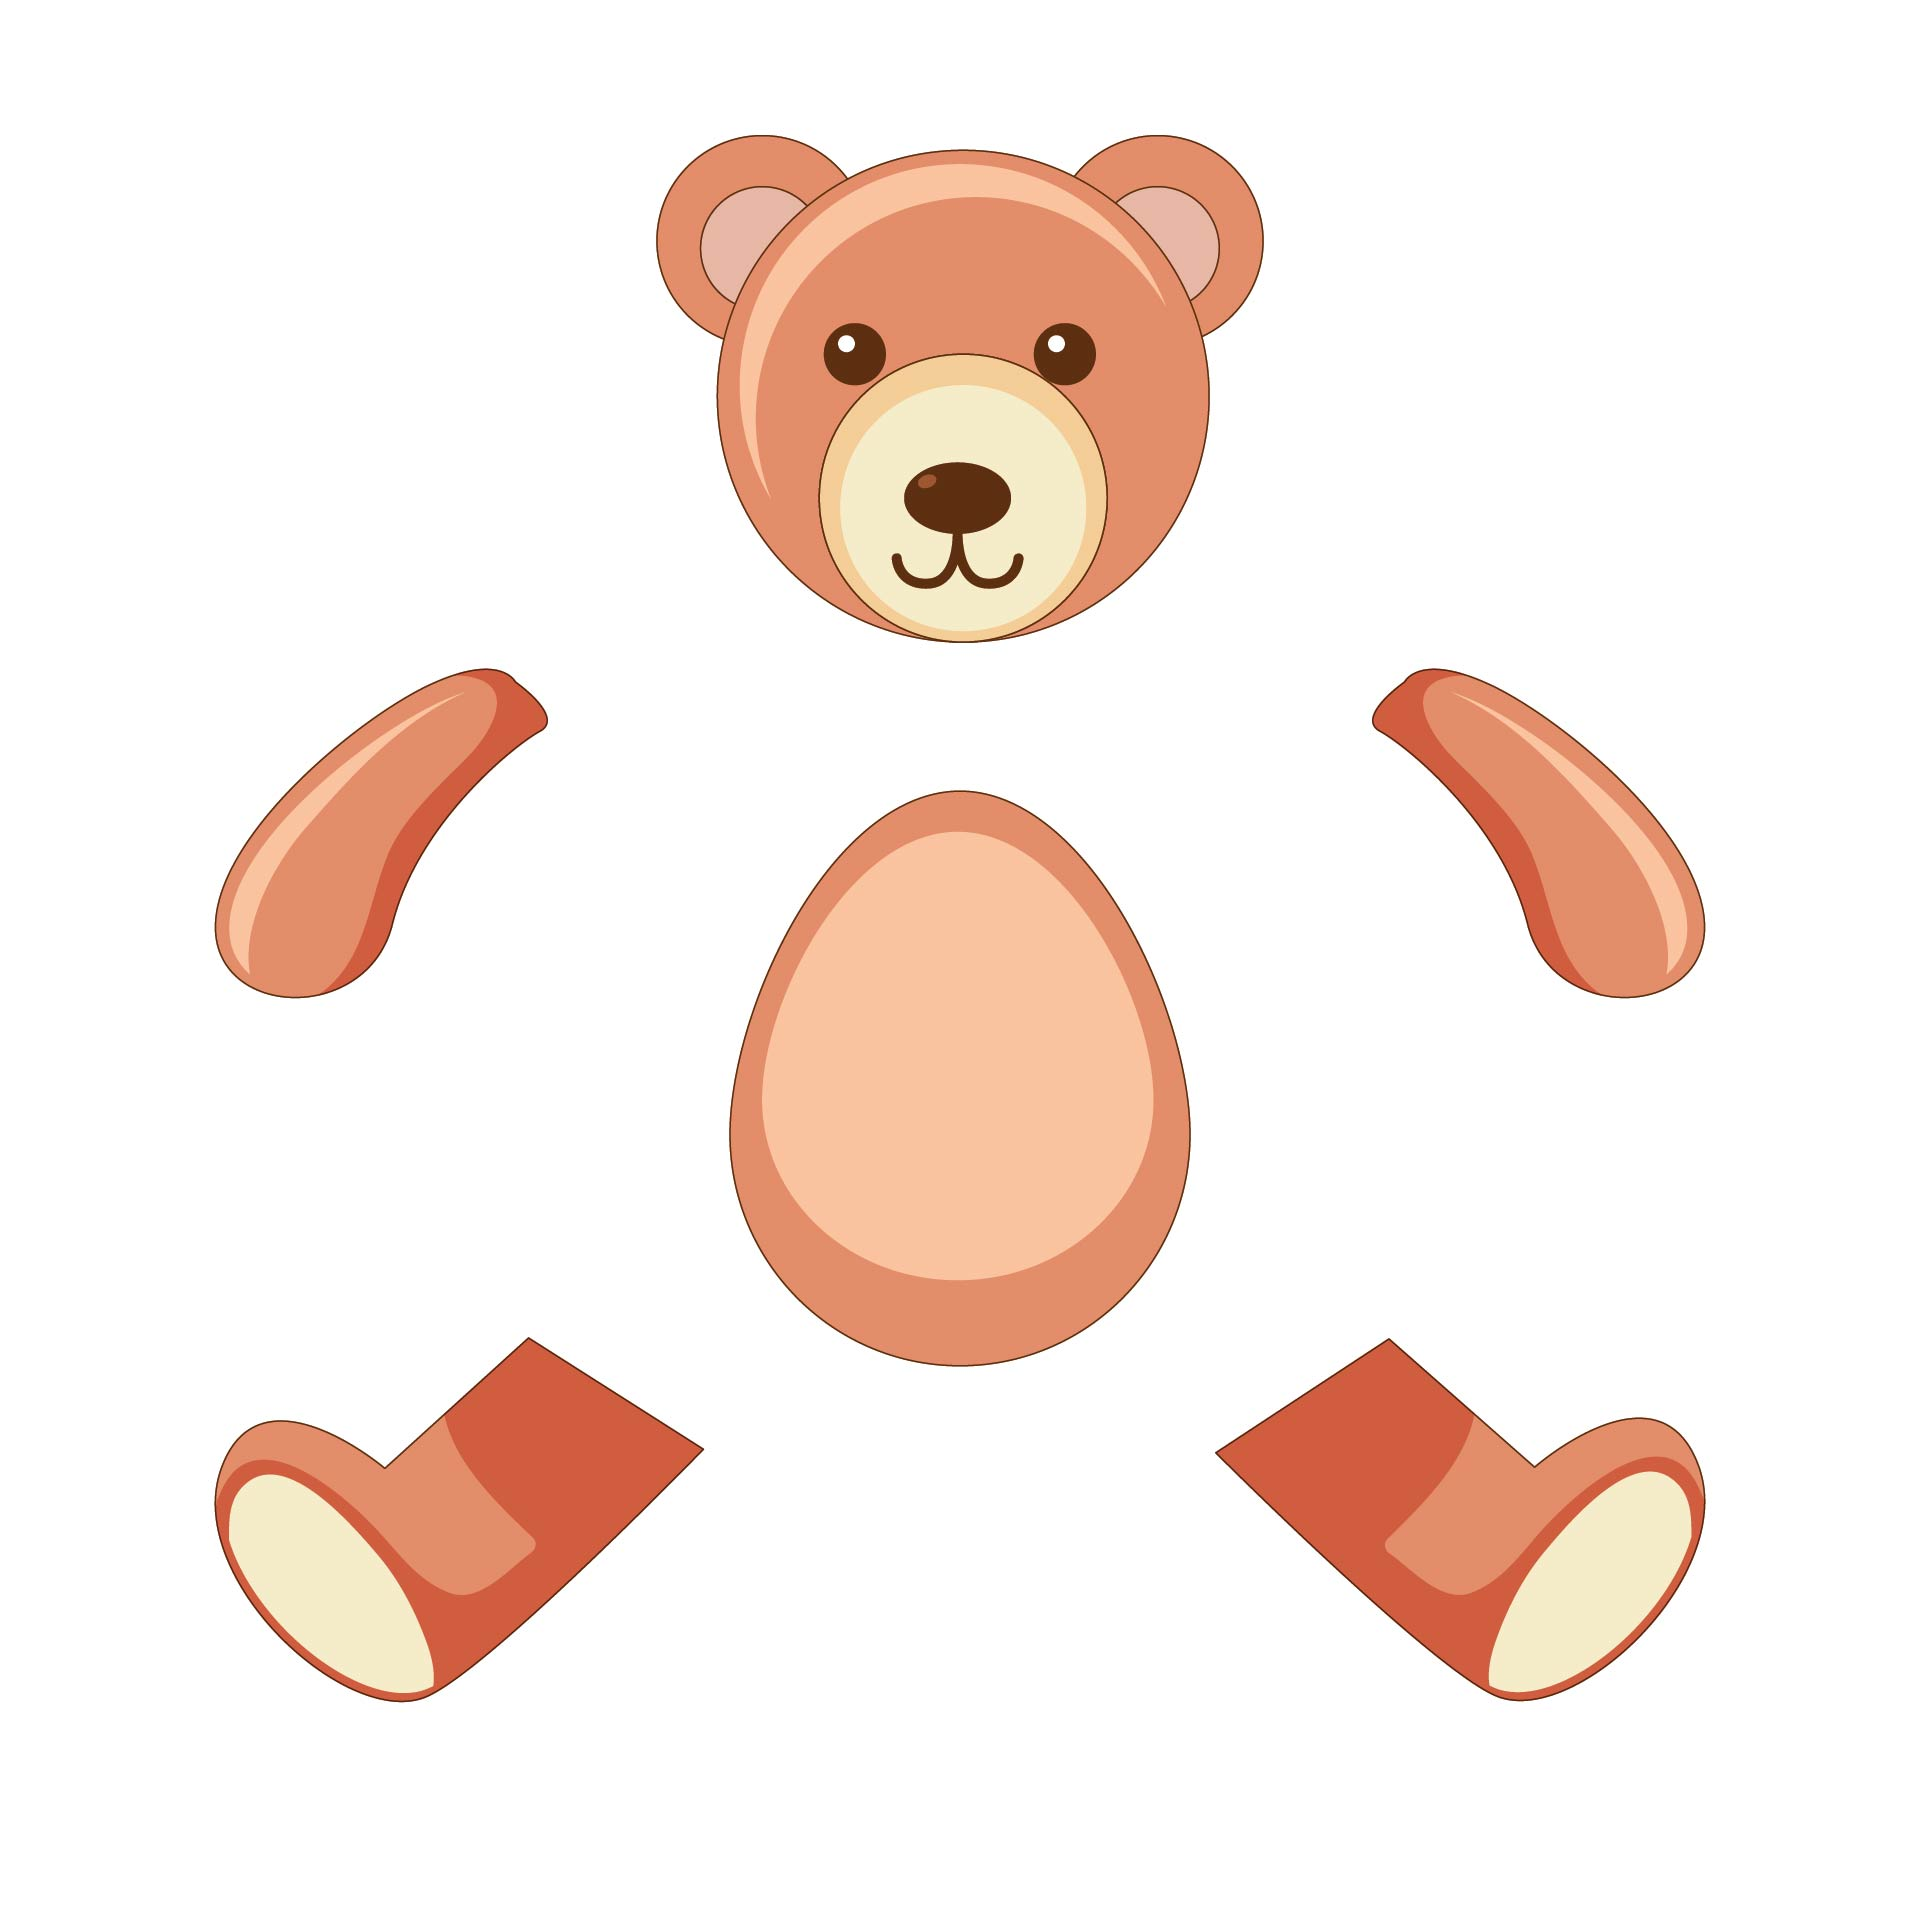 5 Images of Printable Teddy Bear Sewing Pattern